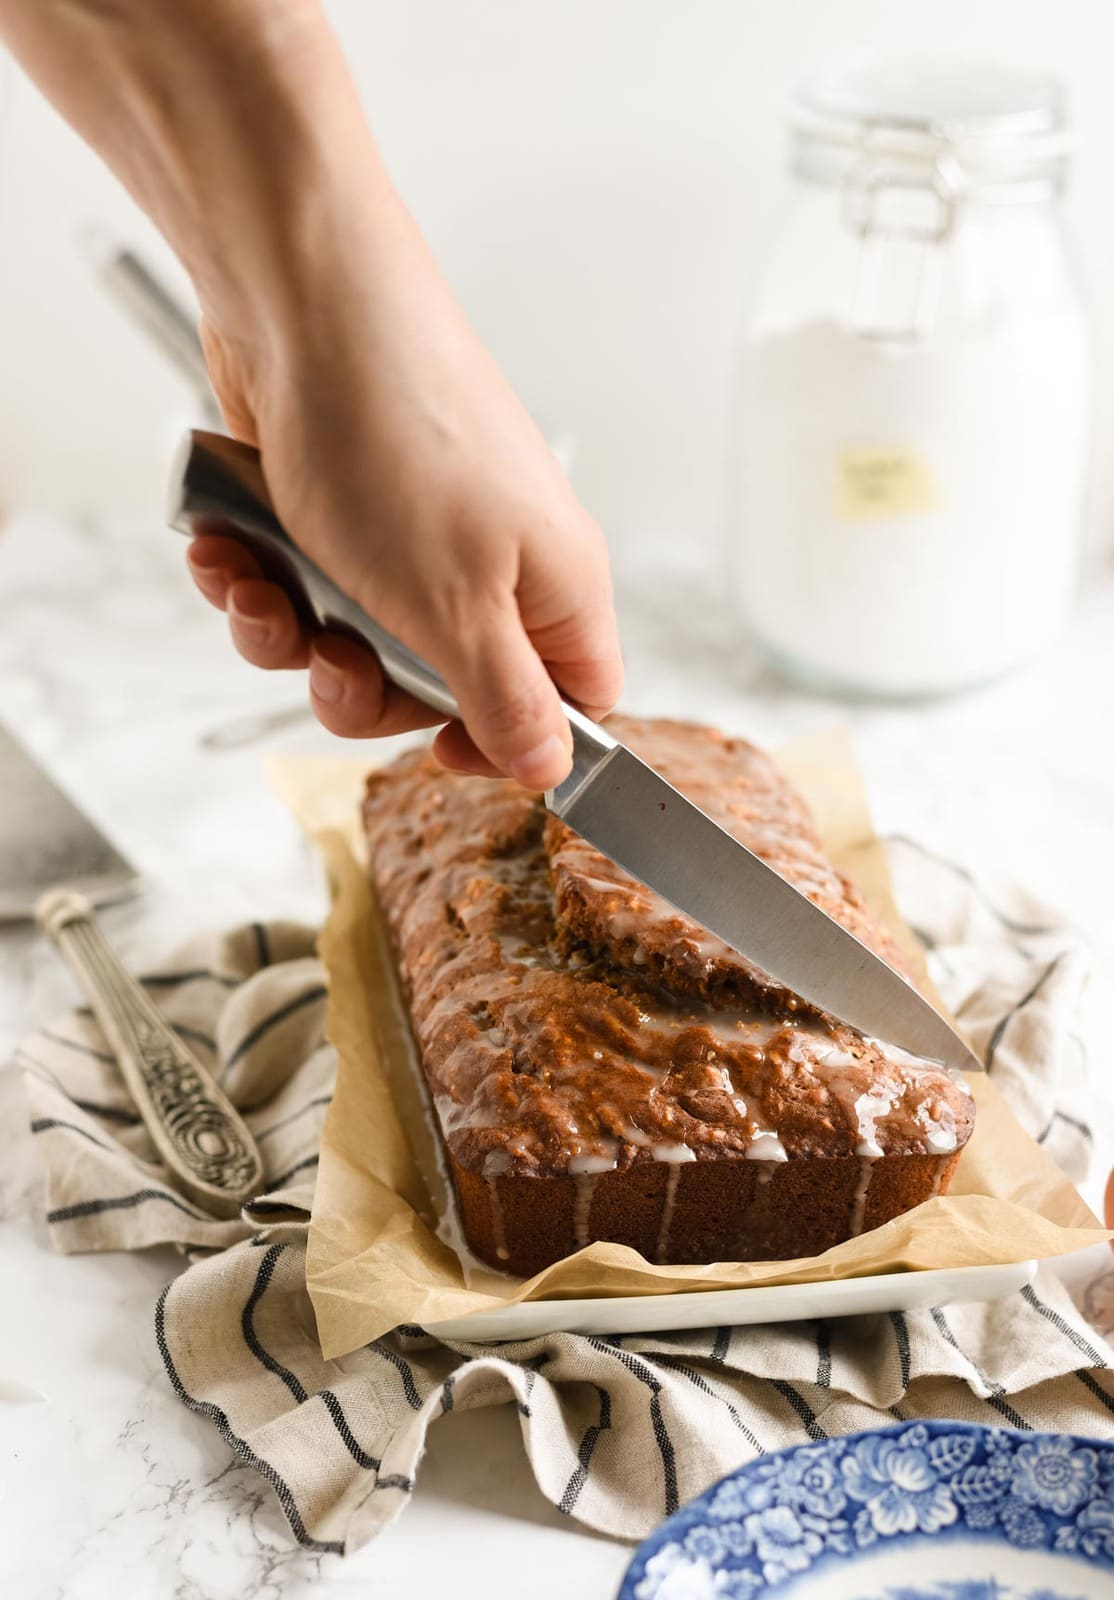 Glazed banana bread being sliced